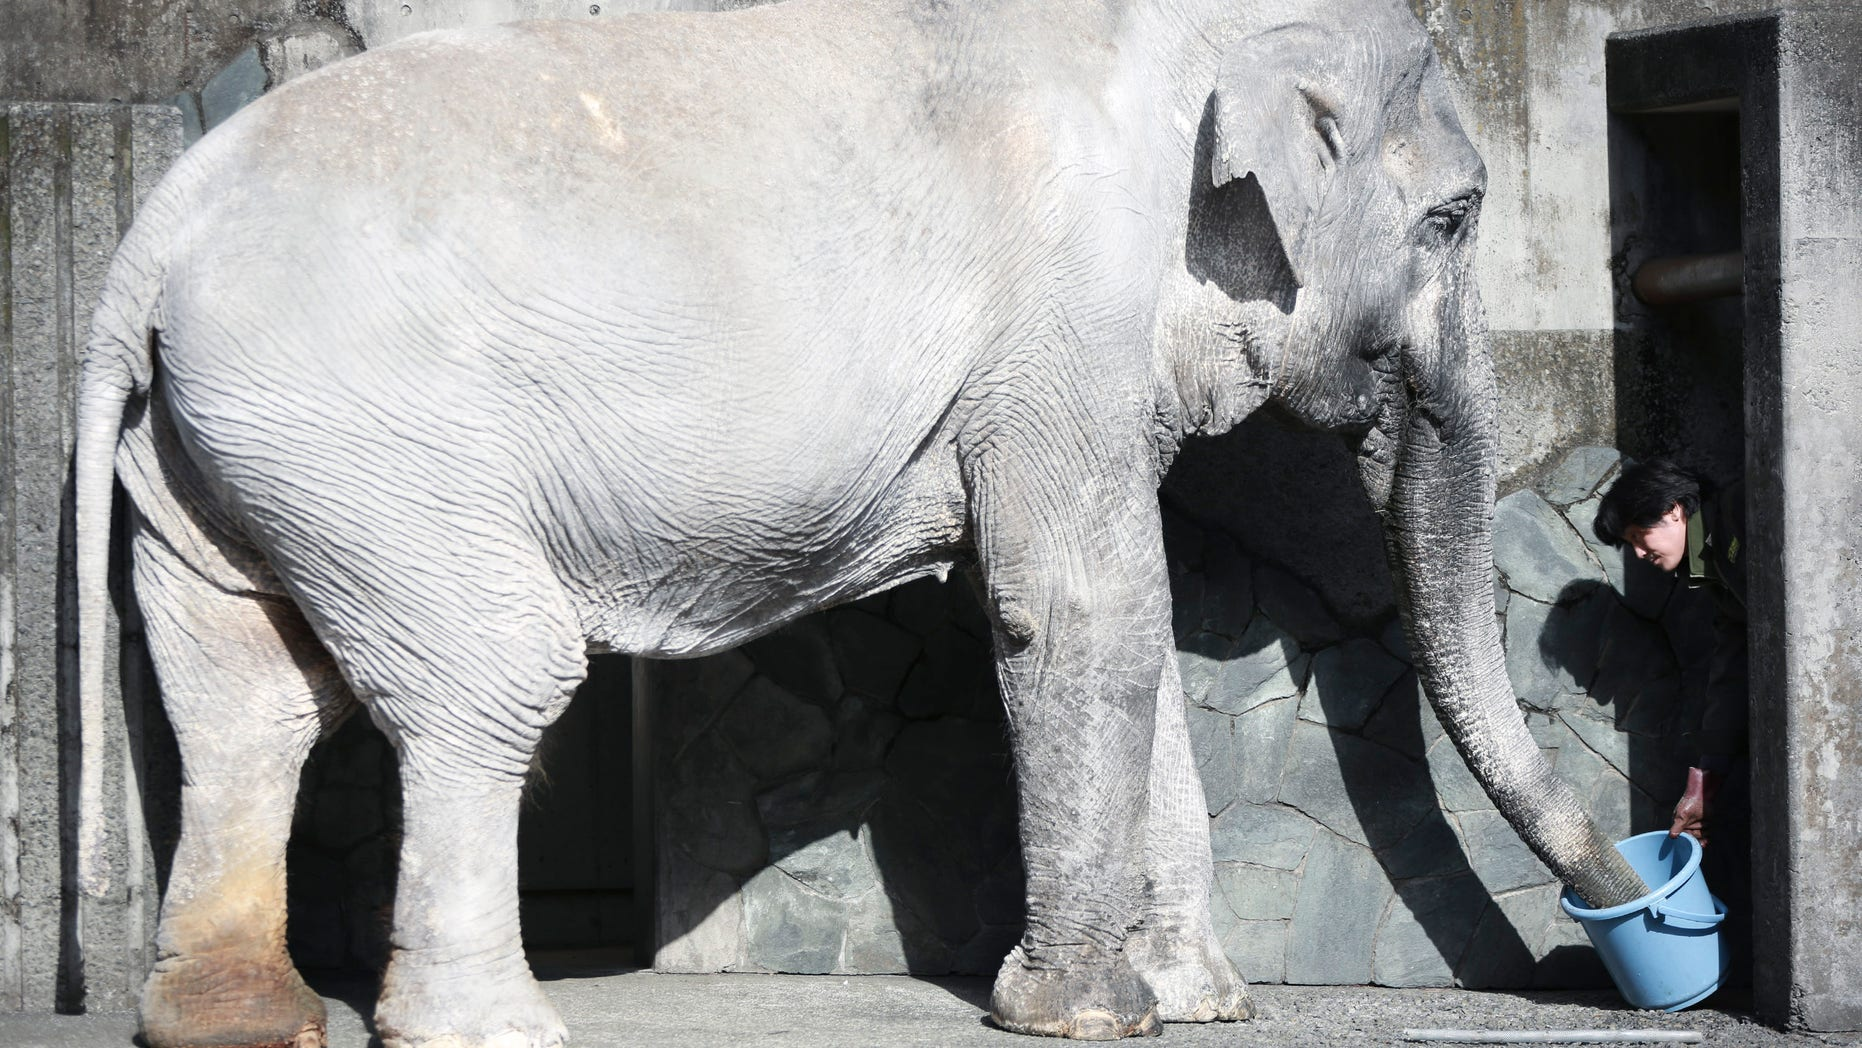 """In this Jan. 27, 2016 photo, a zoo attendant feeds Hanako the elephant at Inokashira Park Zoo on the outskirts of Tokyo. An online petition drive wants the 69-year-old Hanako, or """"flower child,"""" to be moved to a Thai sanctuary, to live in a natural, grassy habitat where elephants romp in herds, not alone in her concrete pen, with a wading pool she hardly uses and a nearby side building to spend the night. It's attracted tens of thousands of signatures already, with the aim of submitting them to the suburban Tokyo zoo and the Japanese government. (AP Photo/Eugene Hoshiko)"""